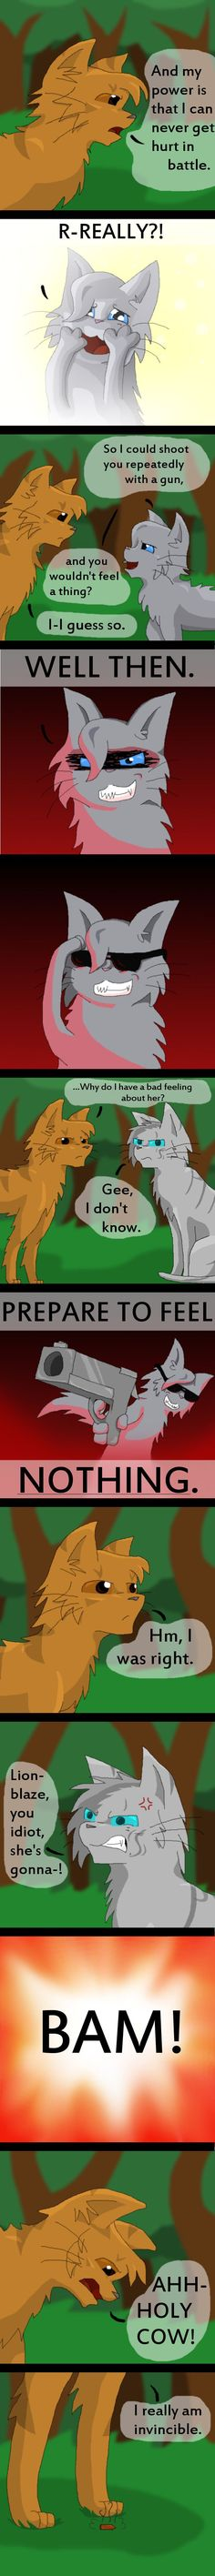 Warrior Cats- She's Crazy Dude (REAL) by whatchyagonnado.d... on @deviantART